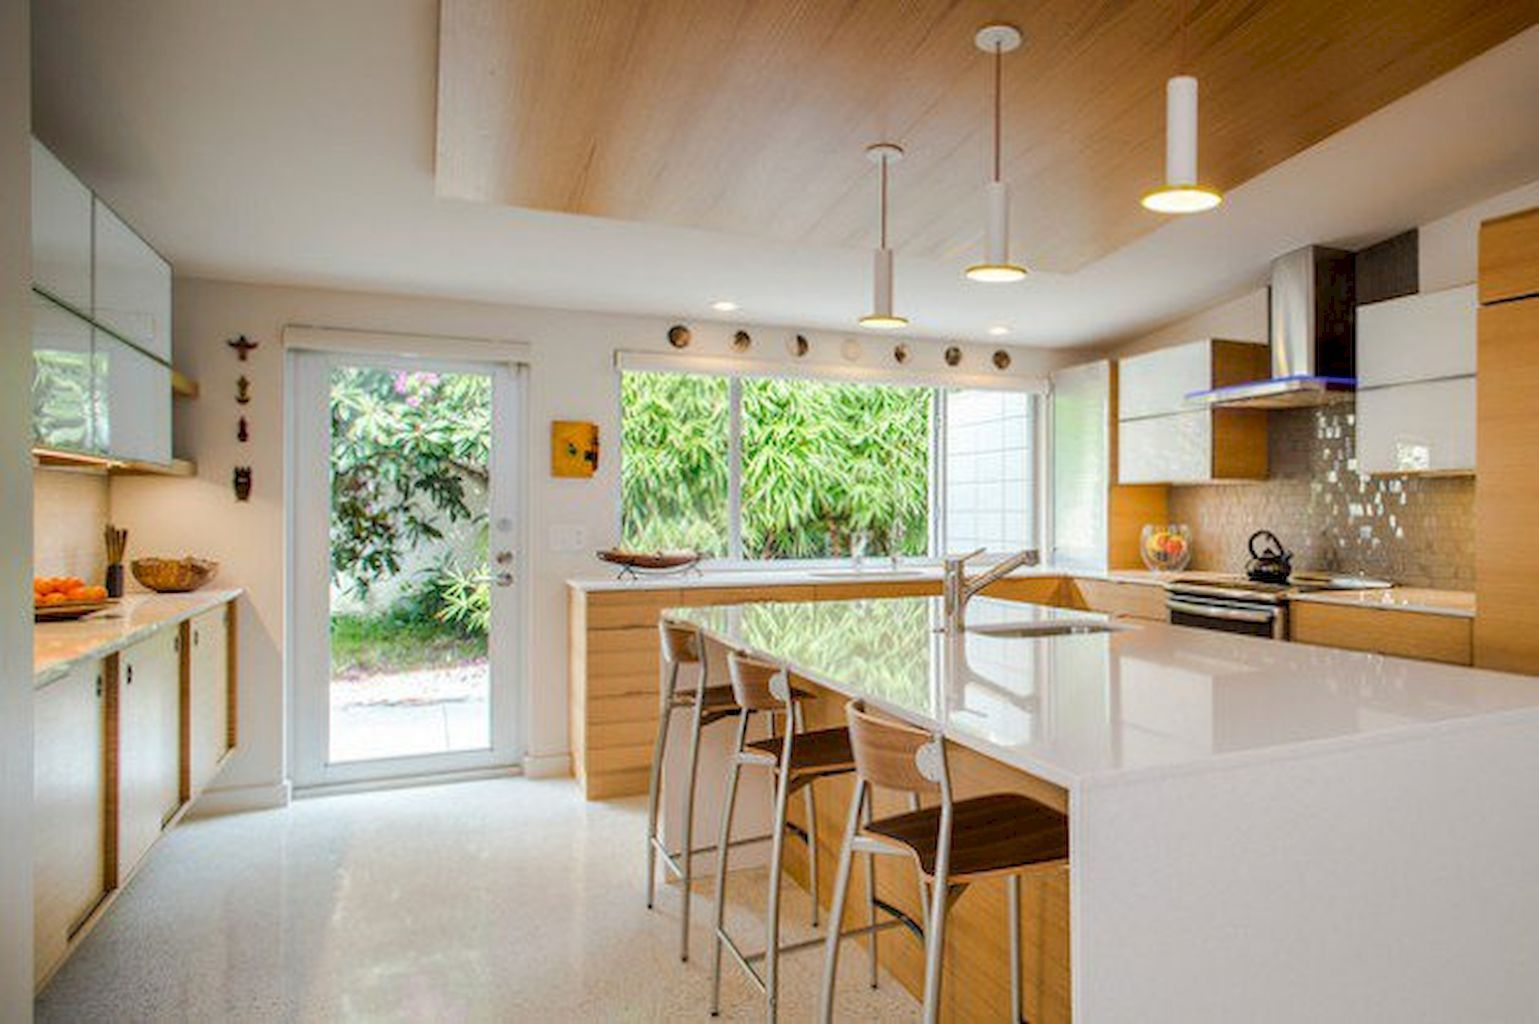 80 Modern Mid Century Kitchen Remodel Ideas  Mid Century Pleasing Remodeling Kitchen Design Ideas